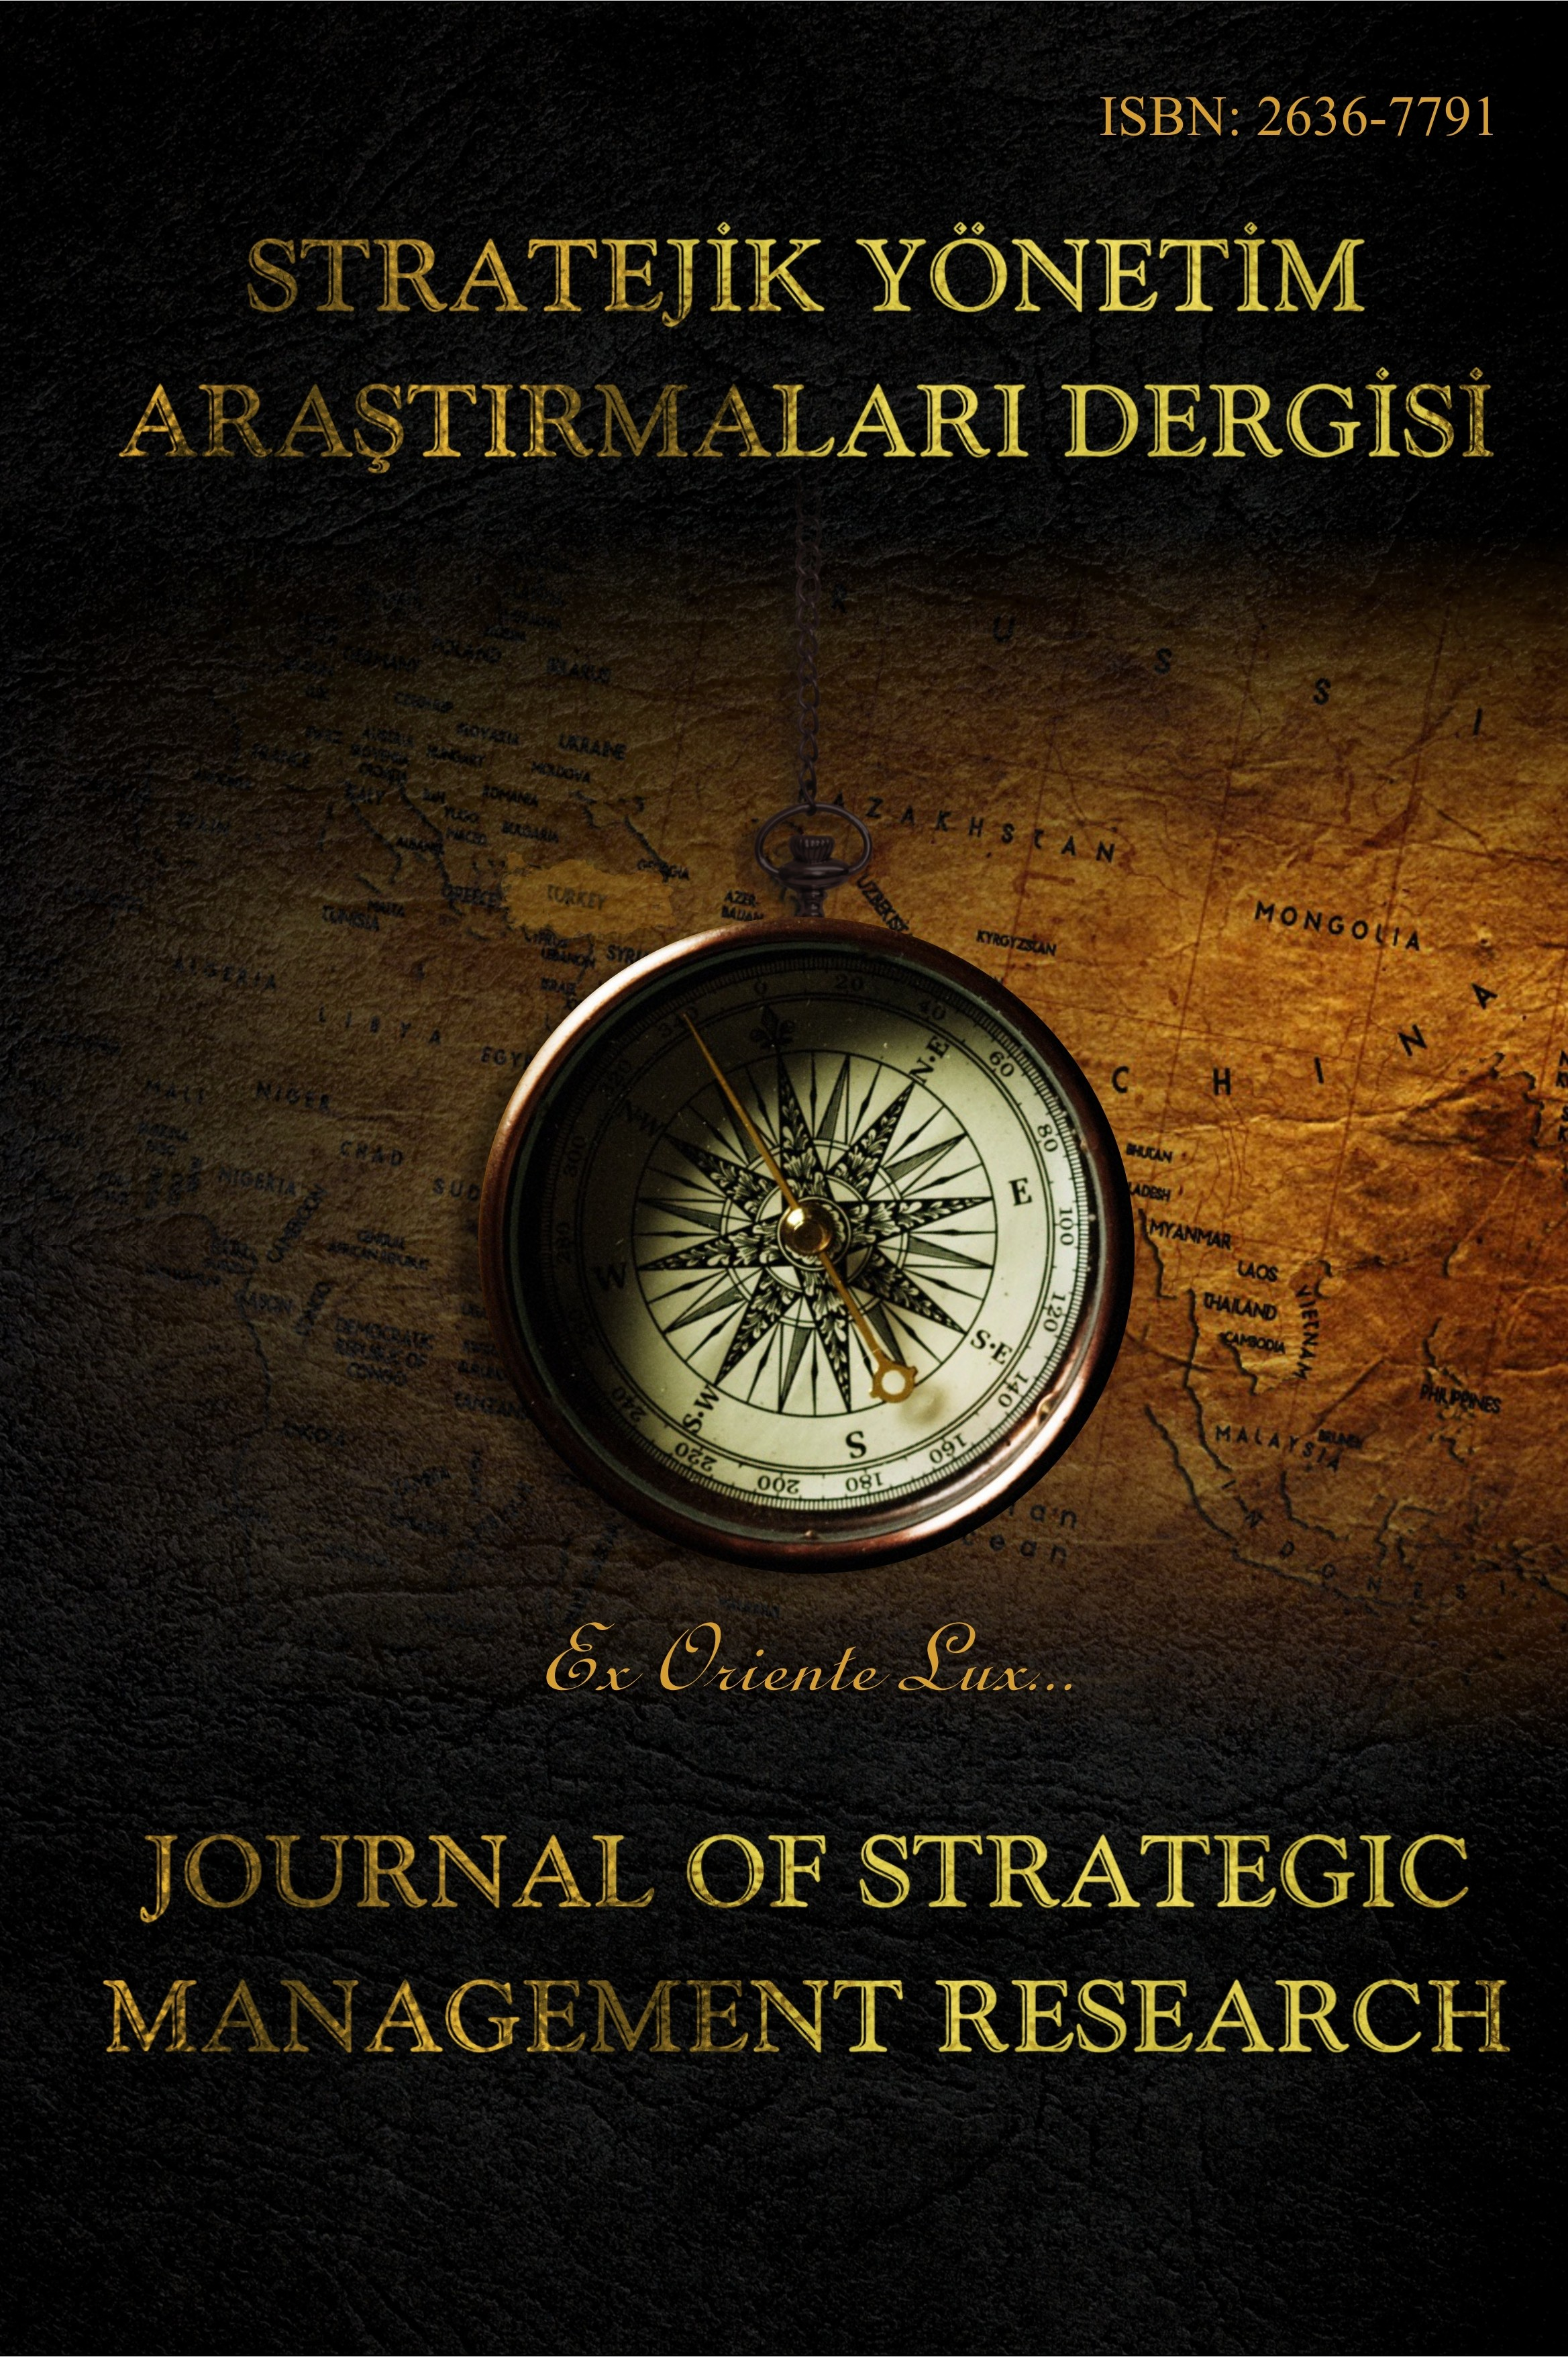 Journal of Strategic Management Research